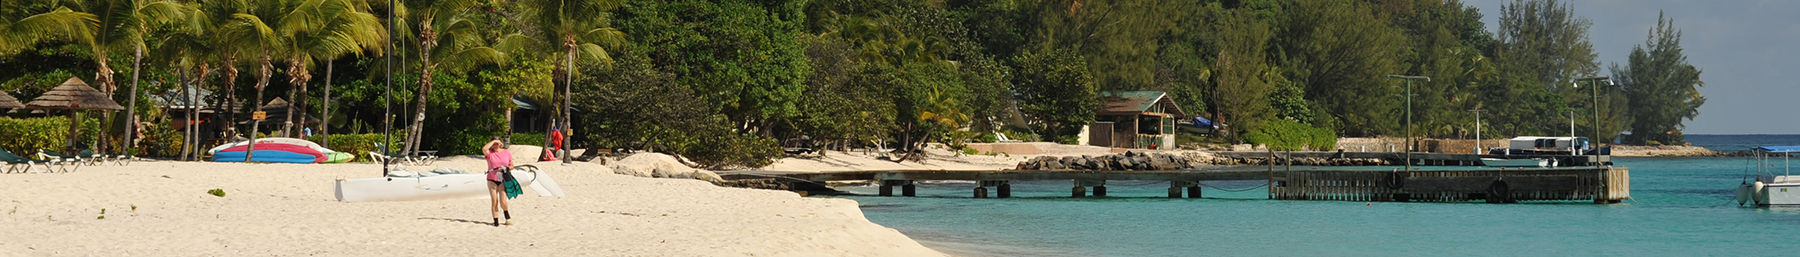 Grenadines banner Palm Island beach.jpg